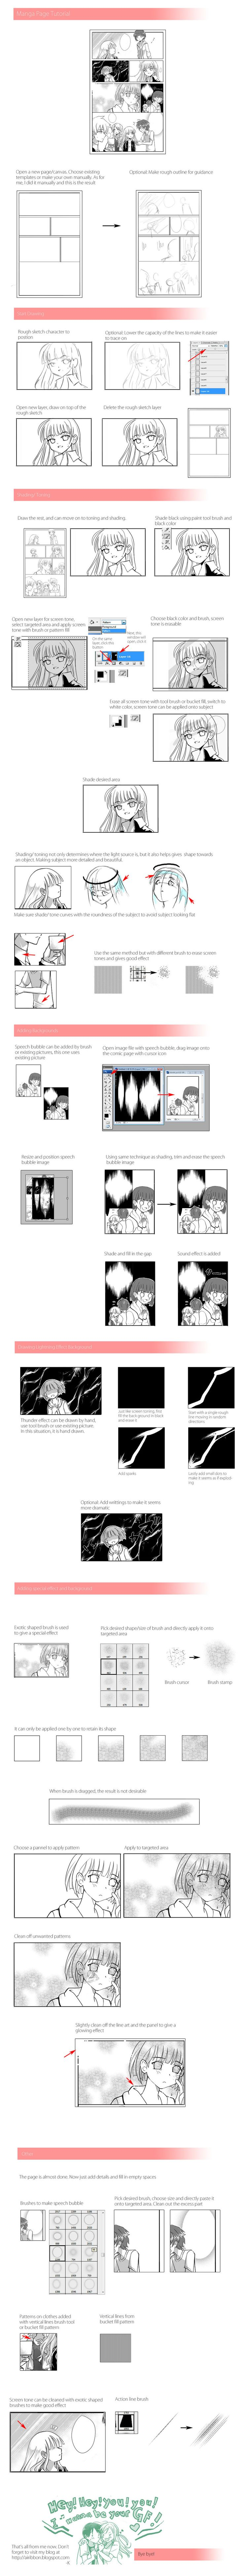 Manga page Tutorial by ~airibbon